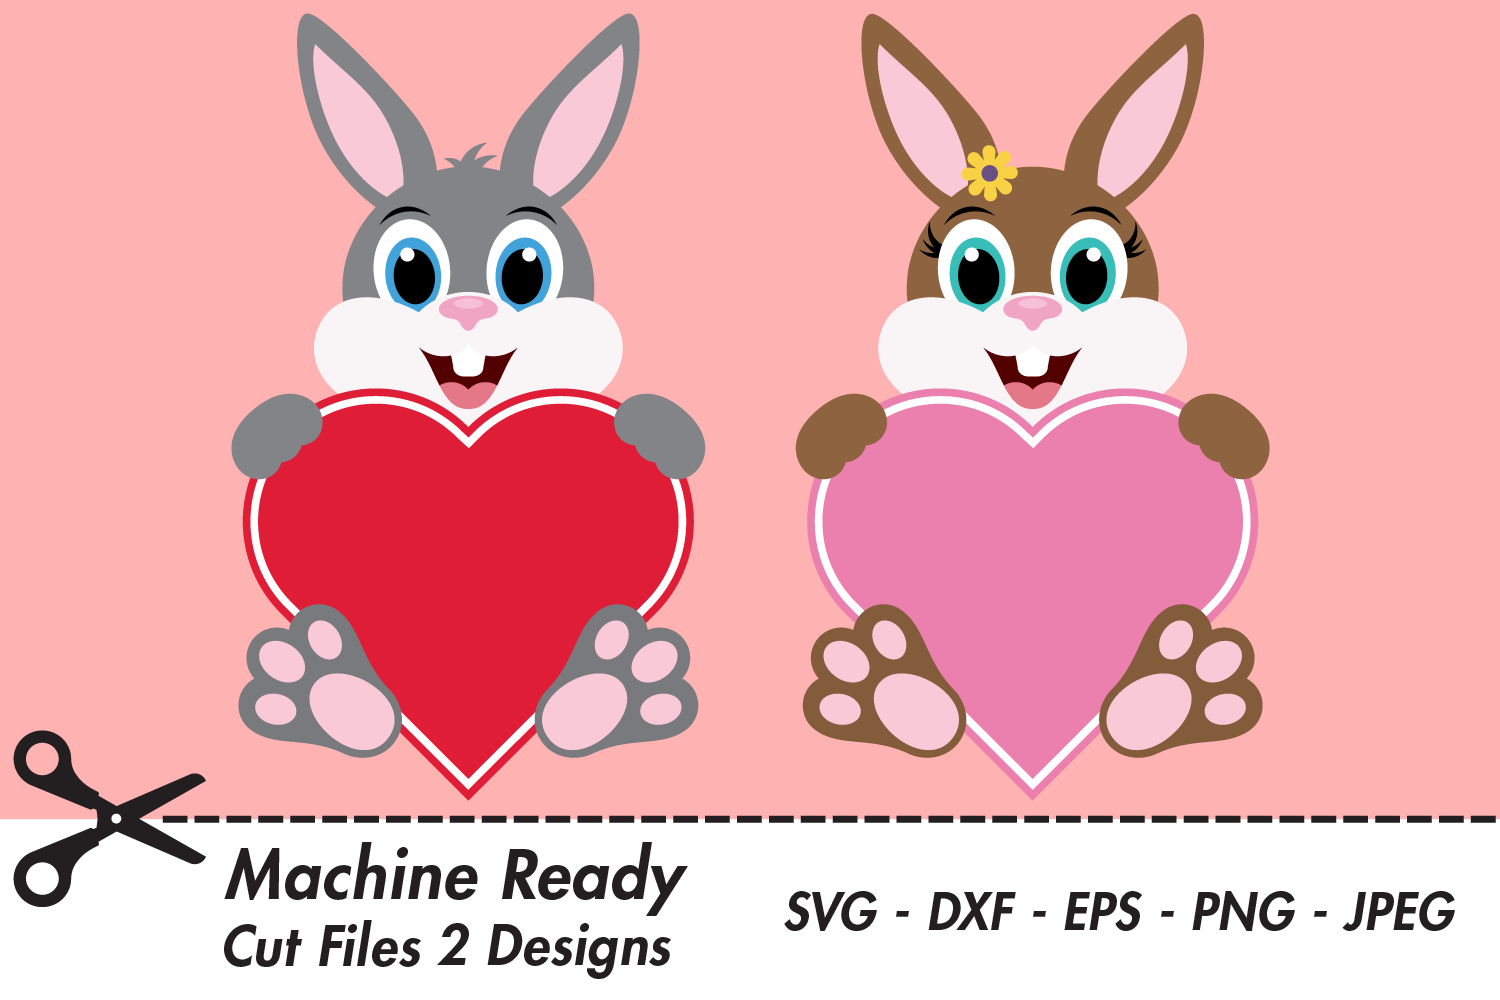 Download Free Cute Bunny Rabbit Valentine Hearts Graphic By Captaincreative for Cricut Explore, Silhouette and other cutting machines.